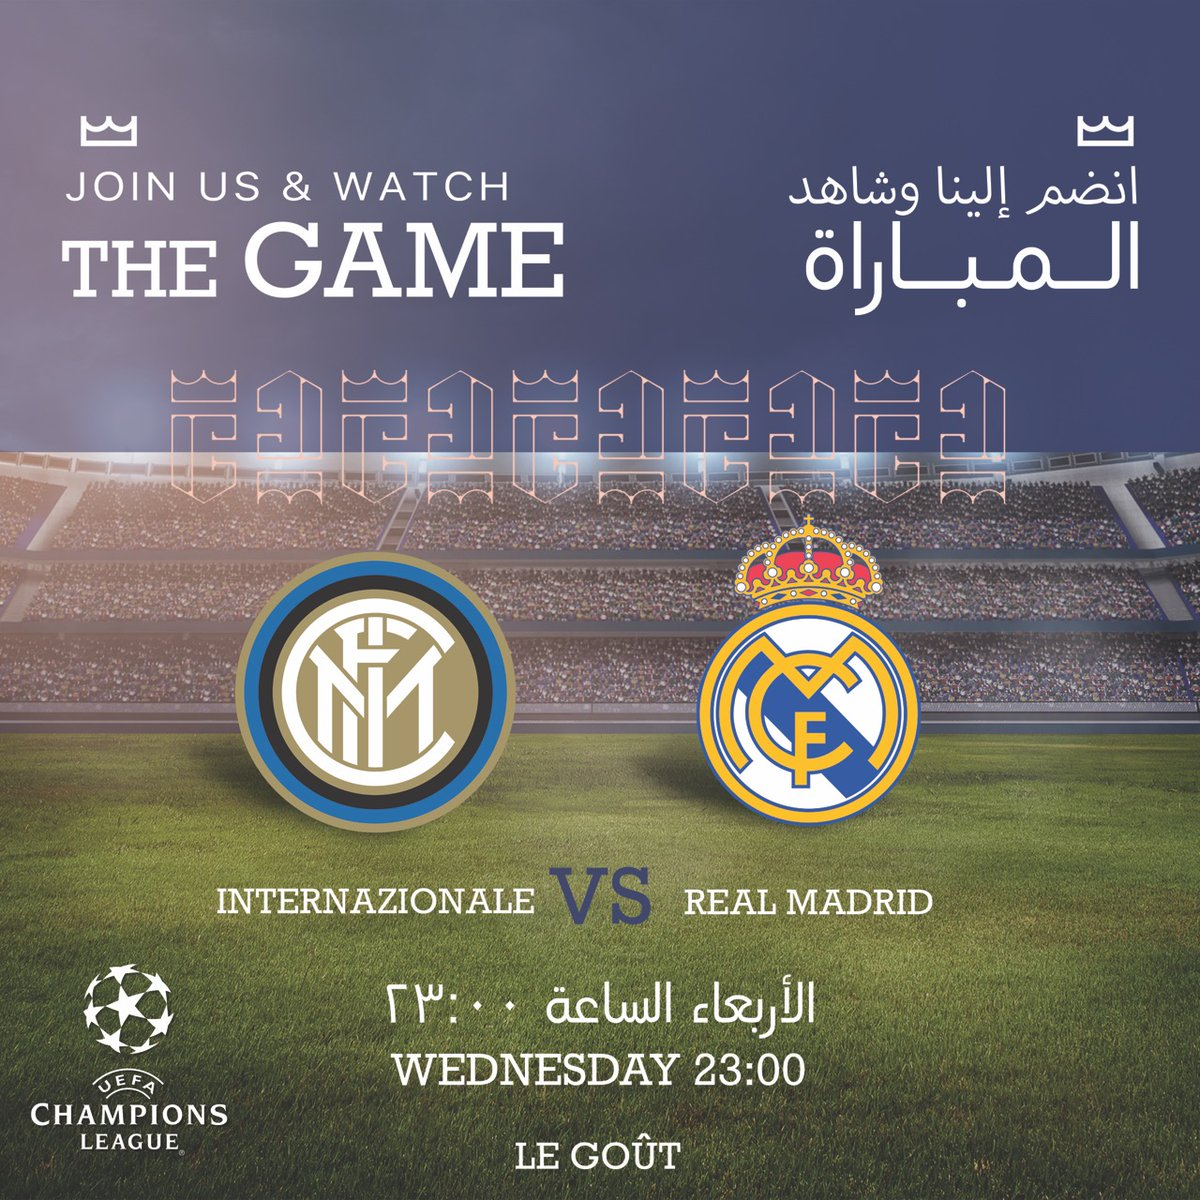 Who will be the winner tonight? Inter Milan or Real Madrid? Join us and cheer for  your favorite team… من سيفوز الليلة؟ انتر ميلان او ريال مدريد؟  انضموا الينا لوشجعوا فريقكم المفضل.  #Food #Foodie #Riyadh #Saudiarabia #LeGout #championsleague #football #Internazional#Realmadrid https://t.co/jacB4KyH7C